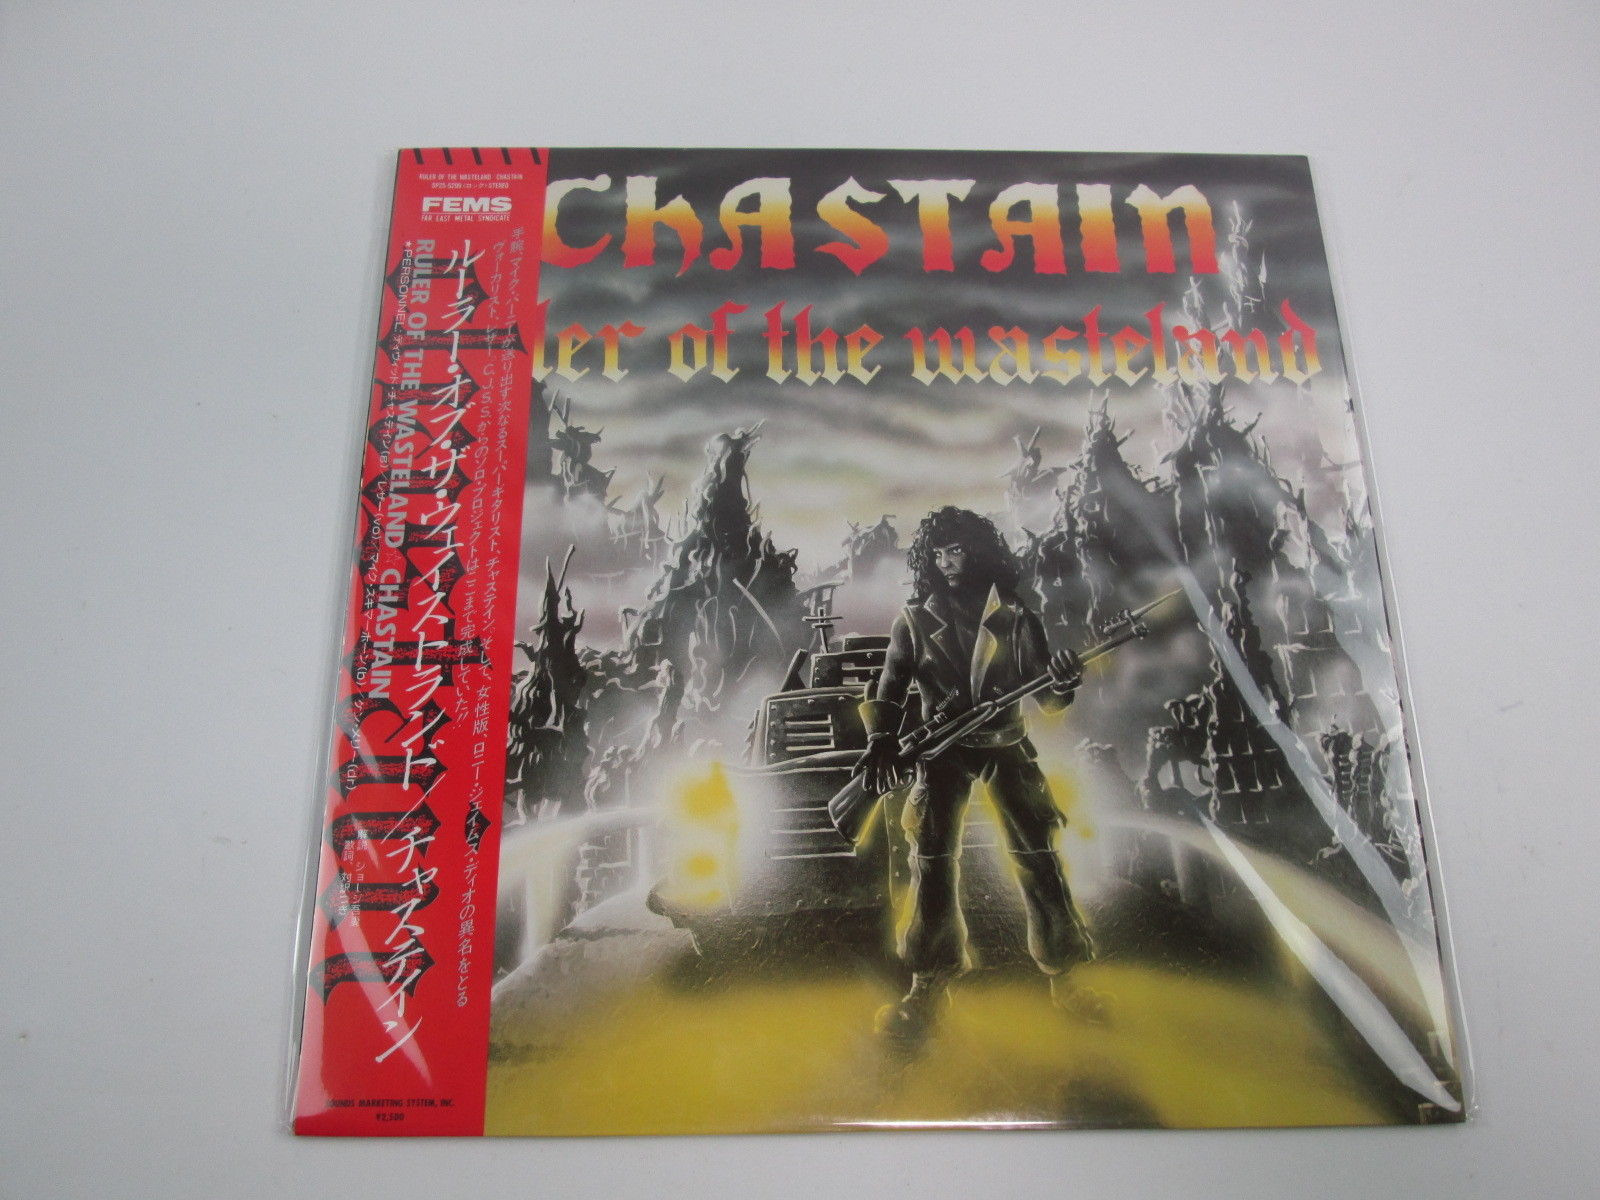 CHASTAIN RULER OF THE WASTELAND SP25-5299 with OBI Japan VINYL  LP